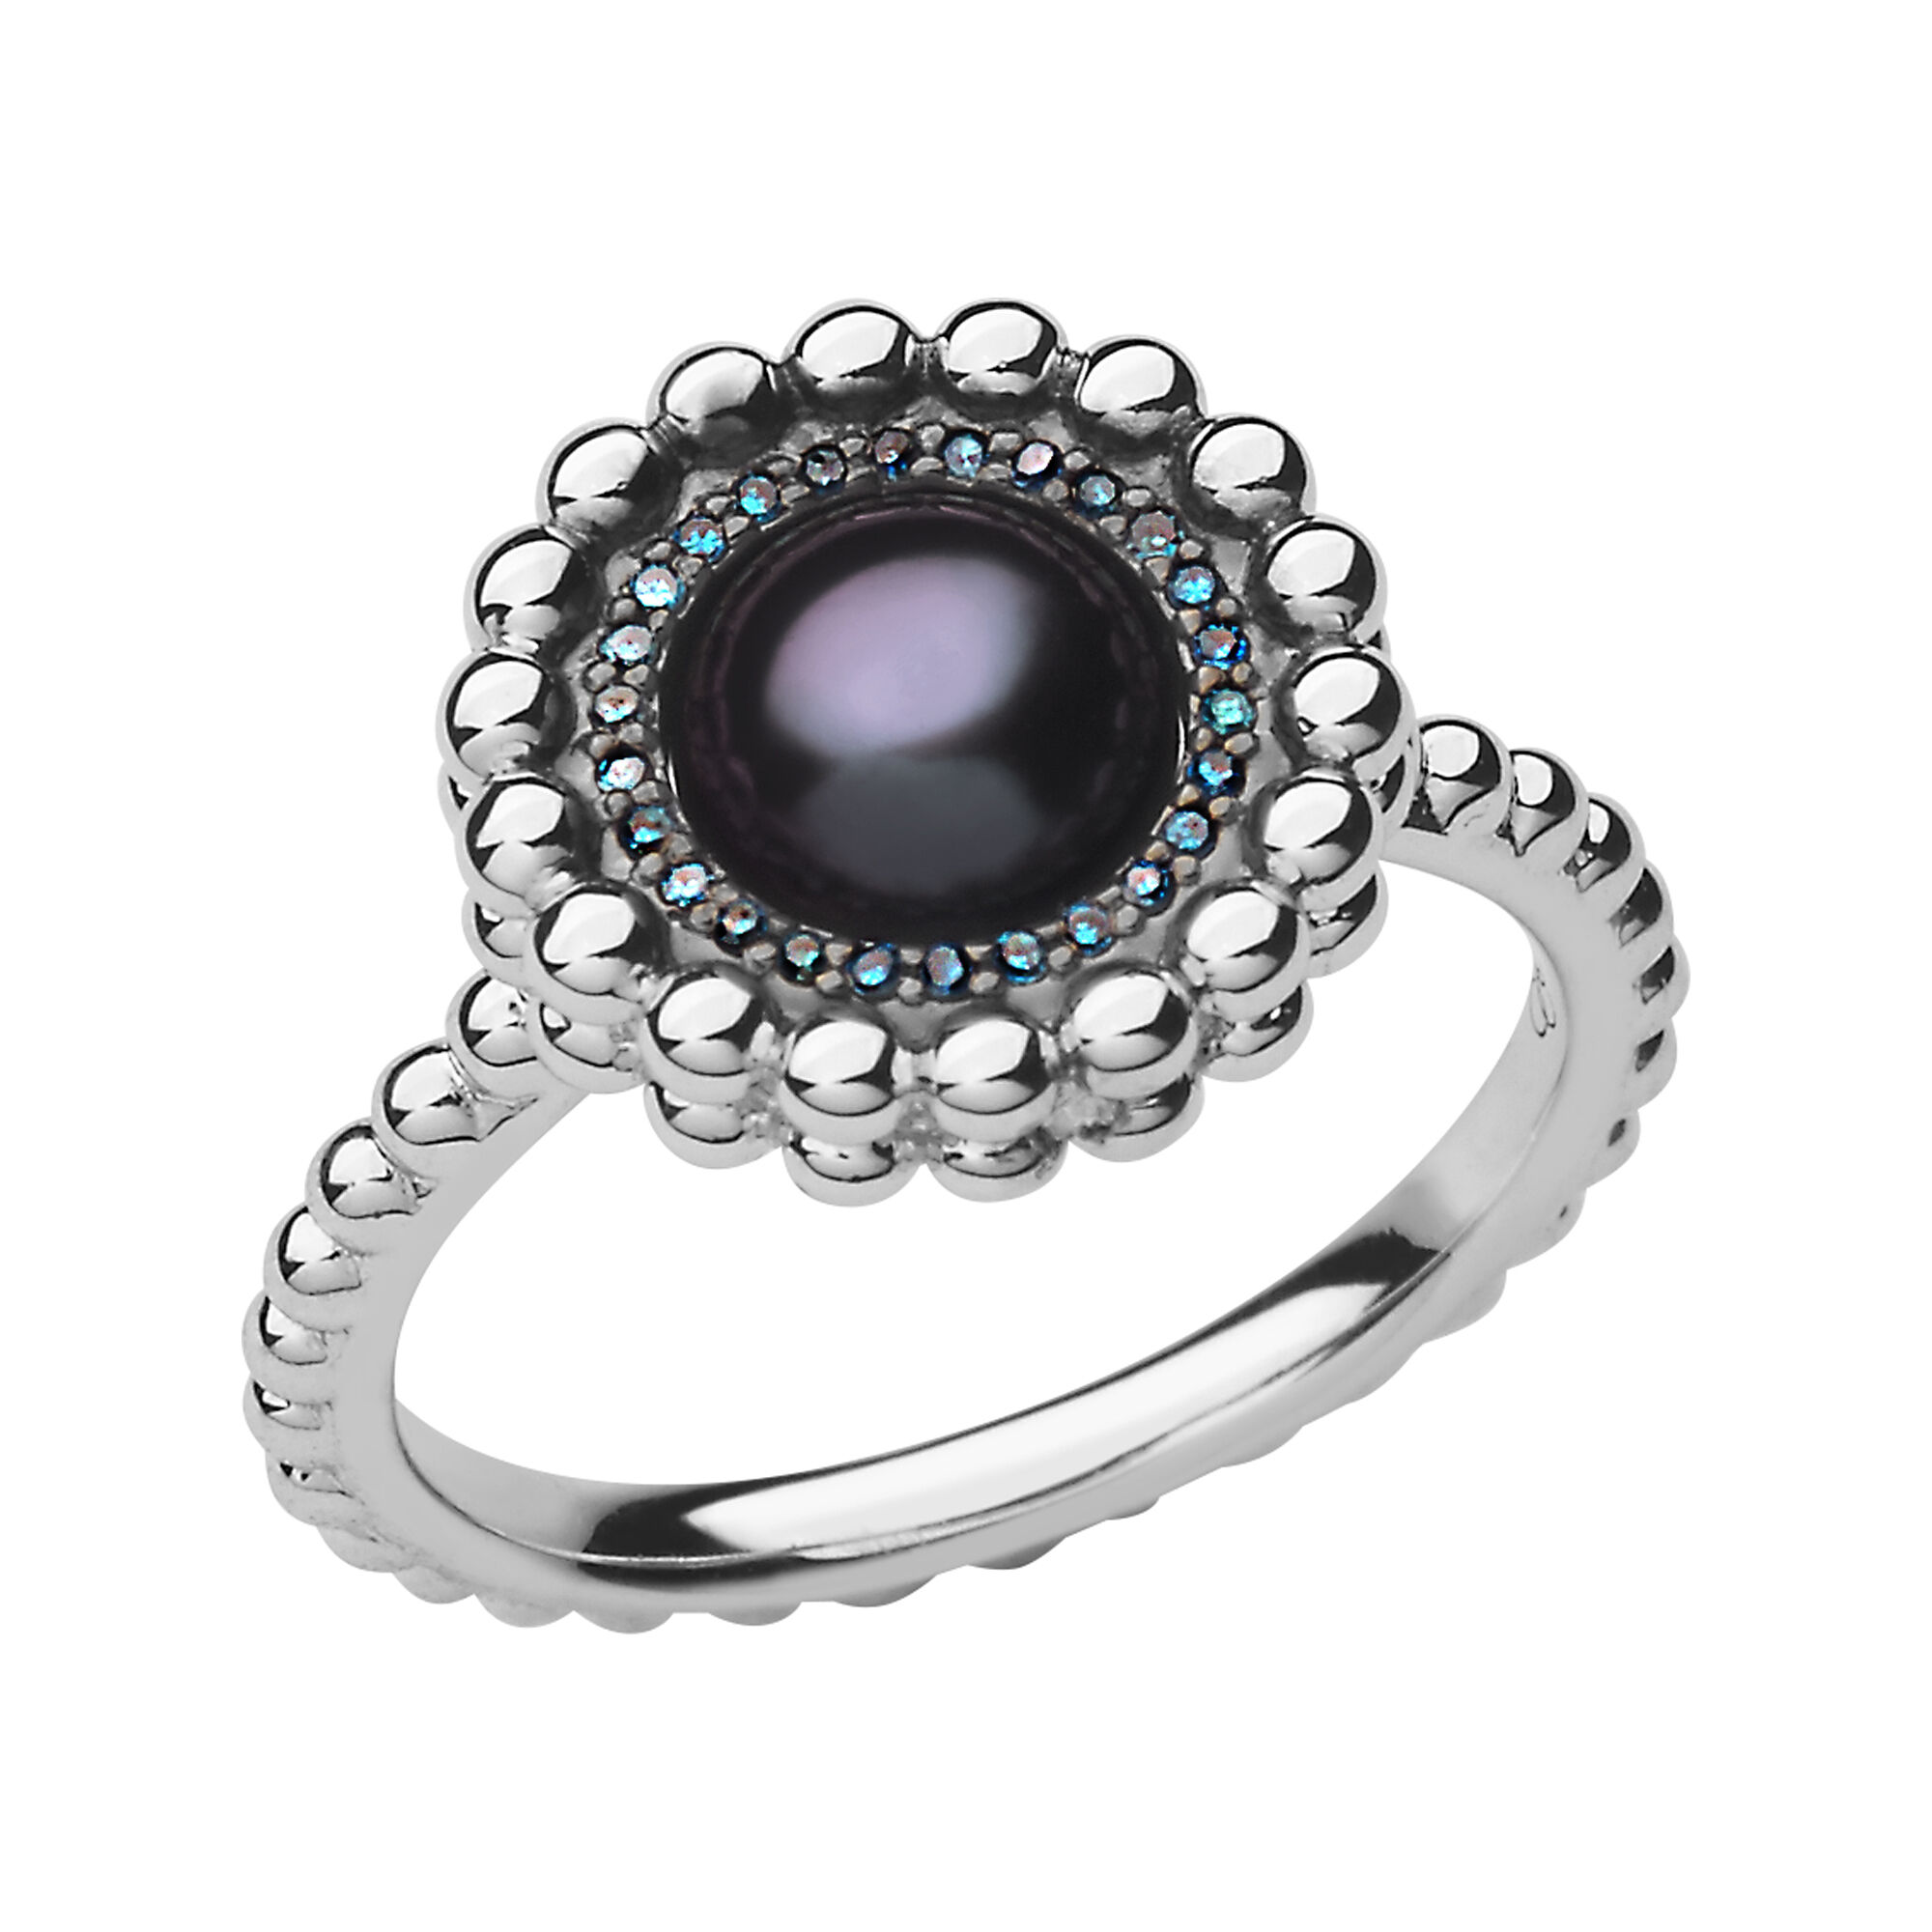 rings diamond wedding pearl ring engagement product micheleco tahitian fine